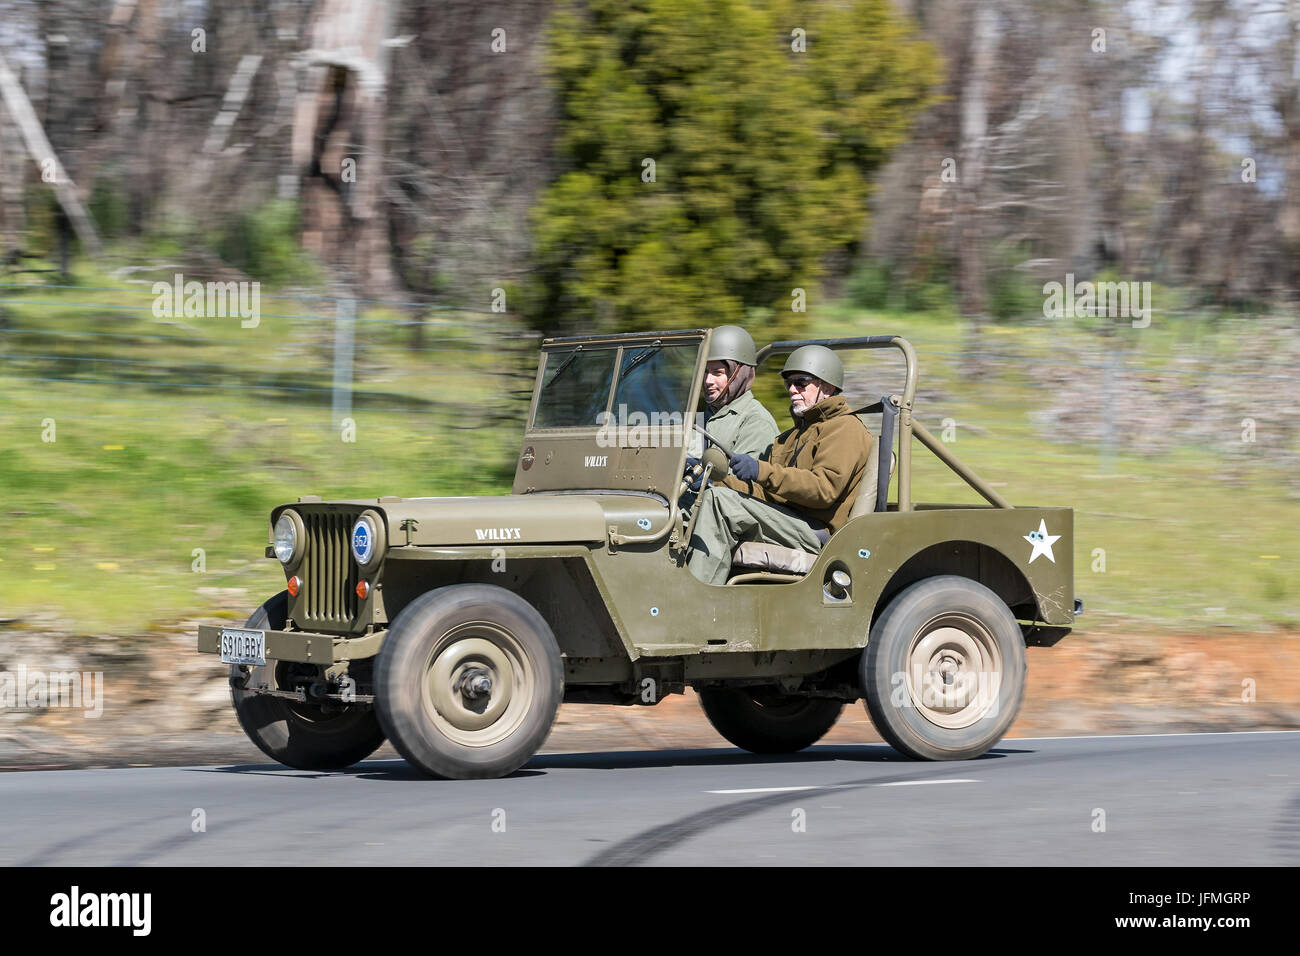 vintage-1946-willys-cj2a-jeep-driving-on